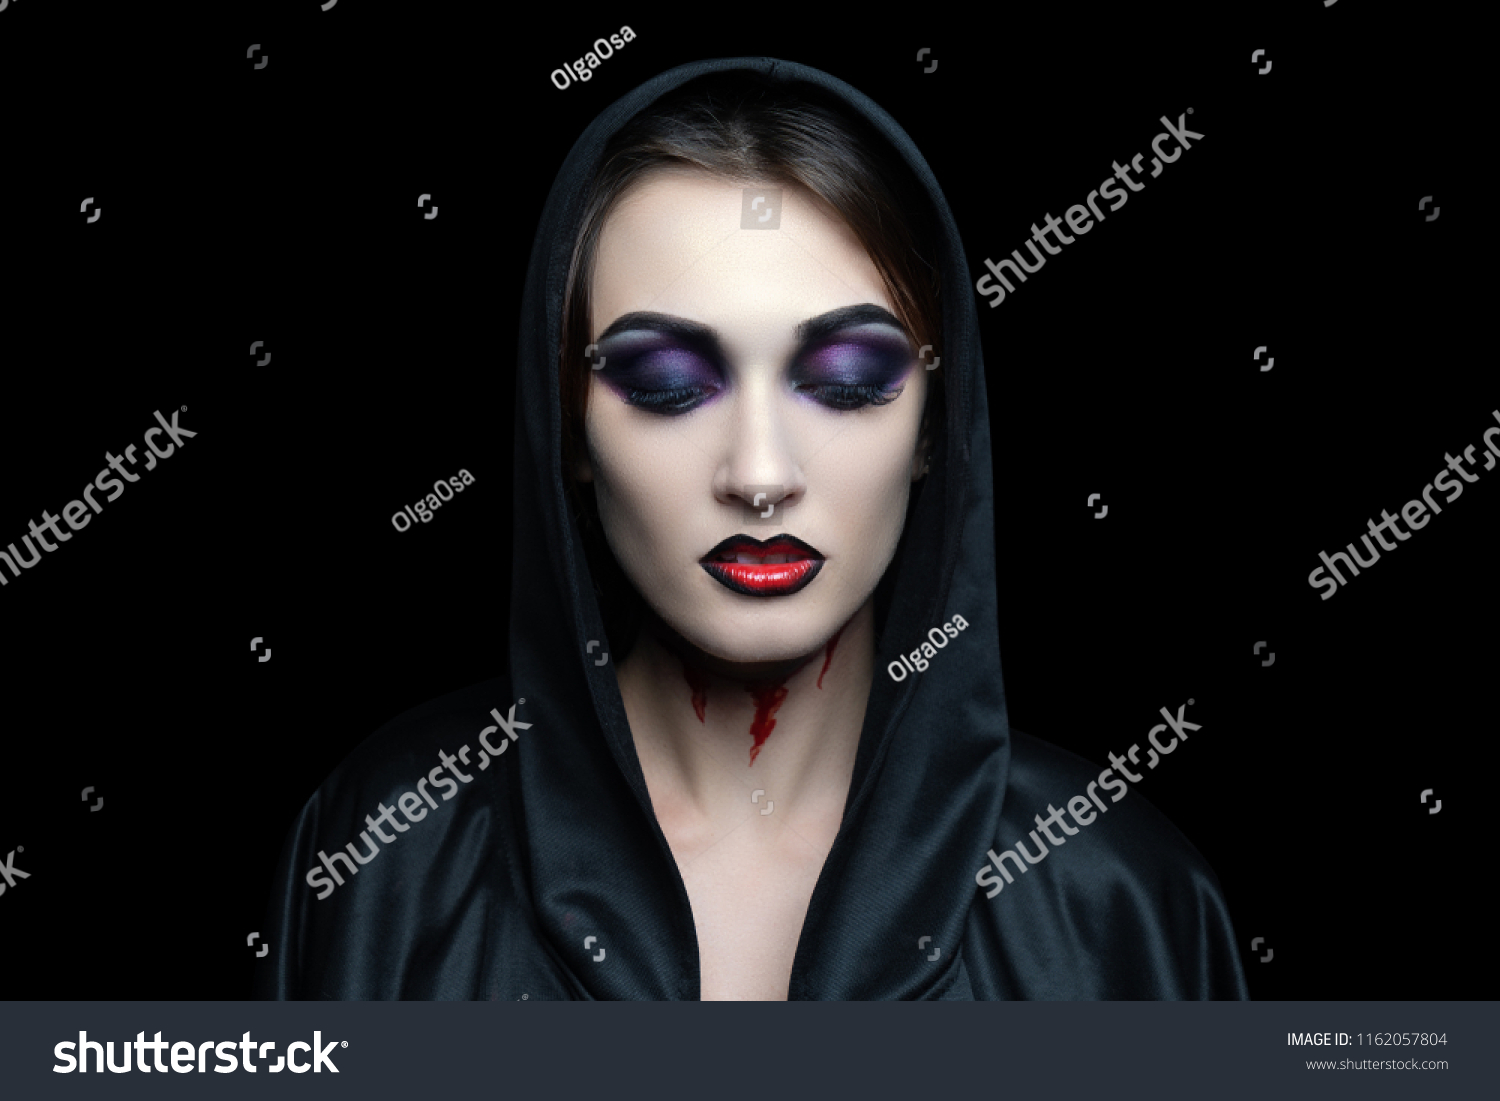 scary vampire makeup halloween cut skin stock photo (edit now